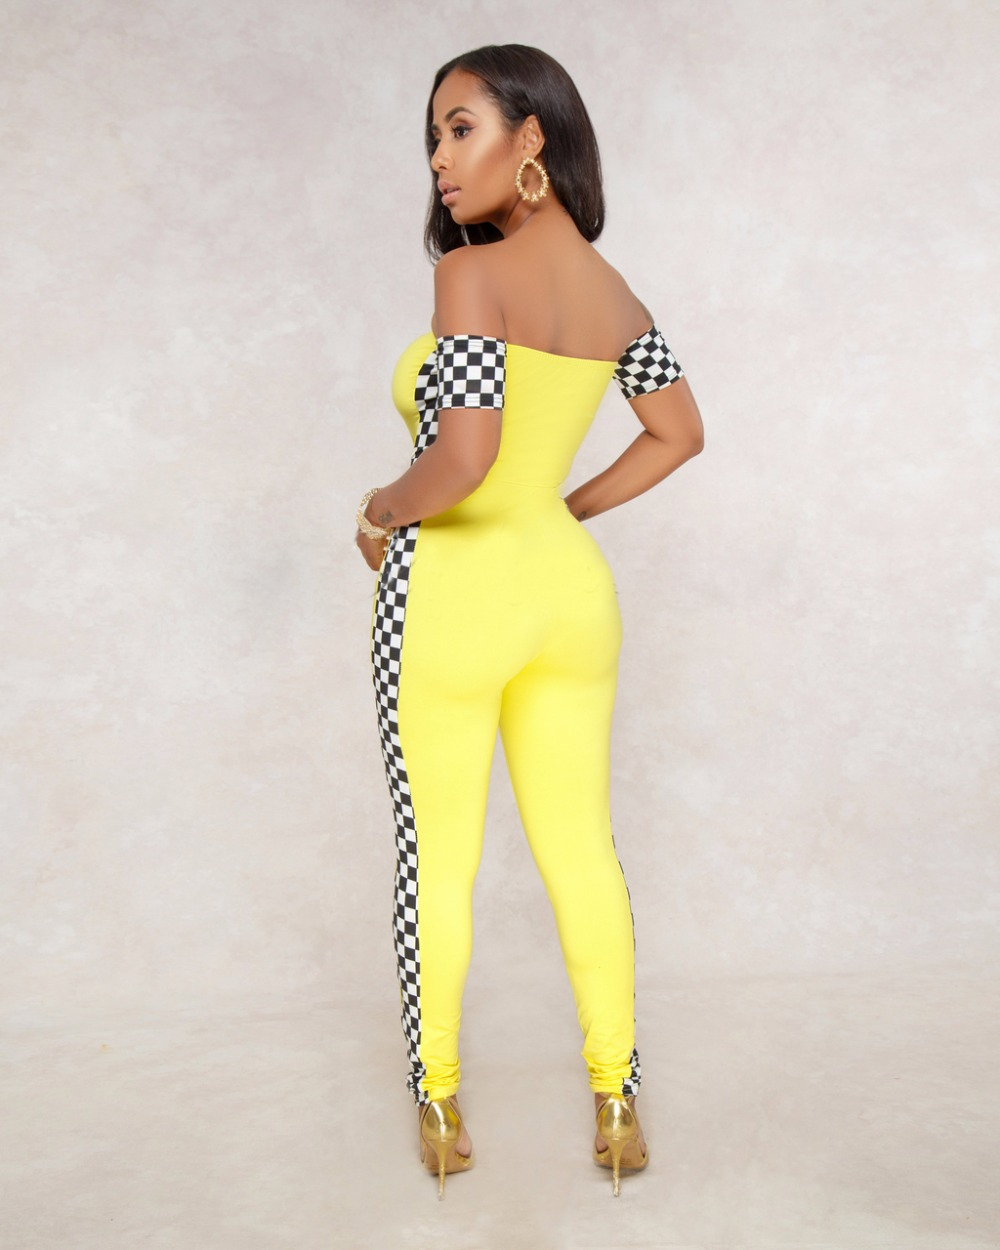 945f11847d86 ... 2018 Summer Women Plaid Racing Print off-shoulder Slim Fitness Jumpsuits  Body Suit Up Sexy ...